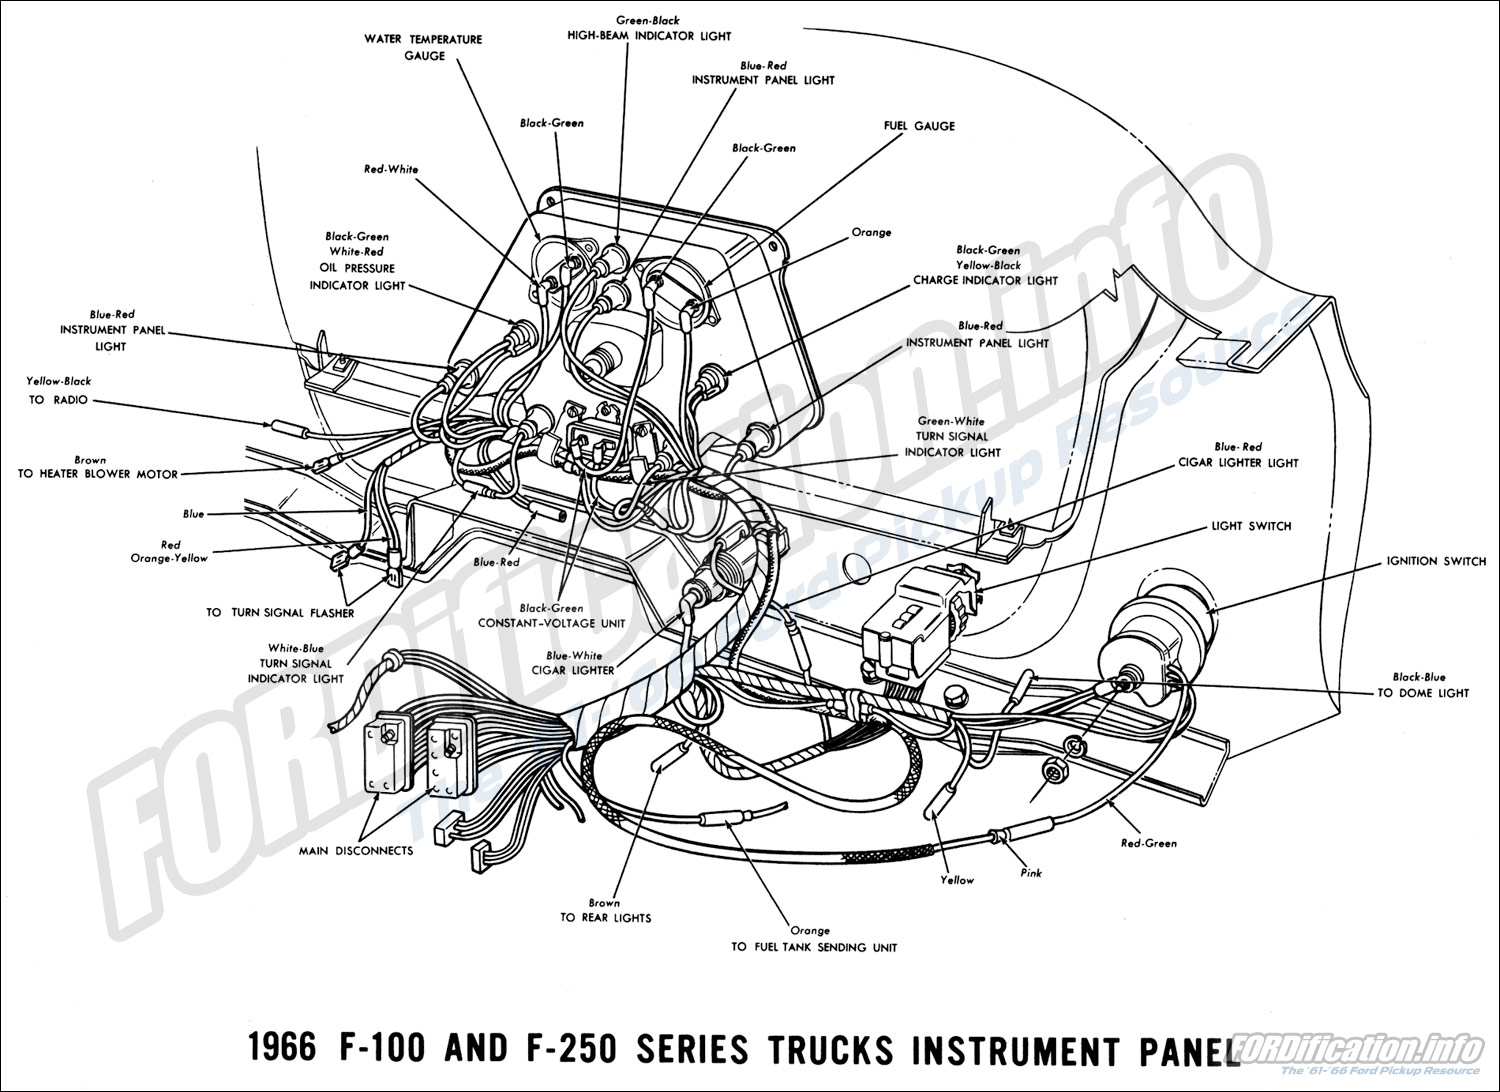 Ford Tractor Wiring Diagram Ford Wiring Diagram Images